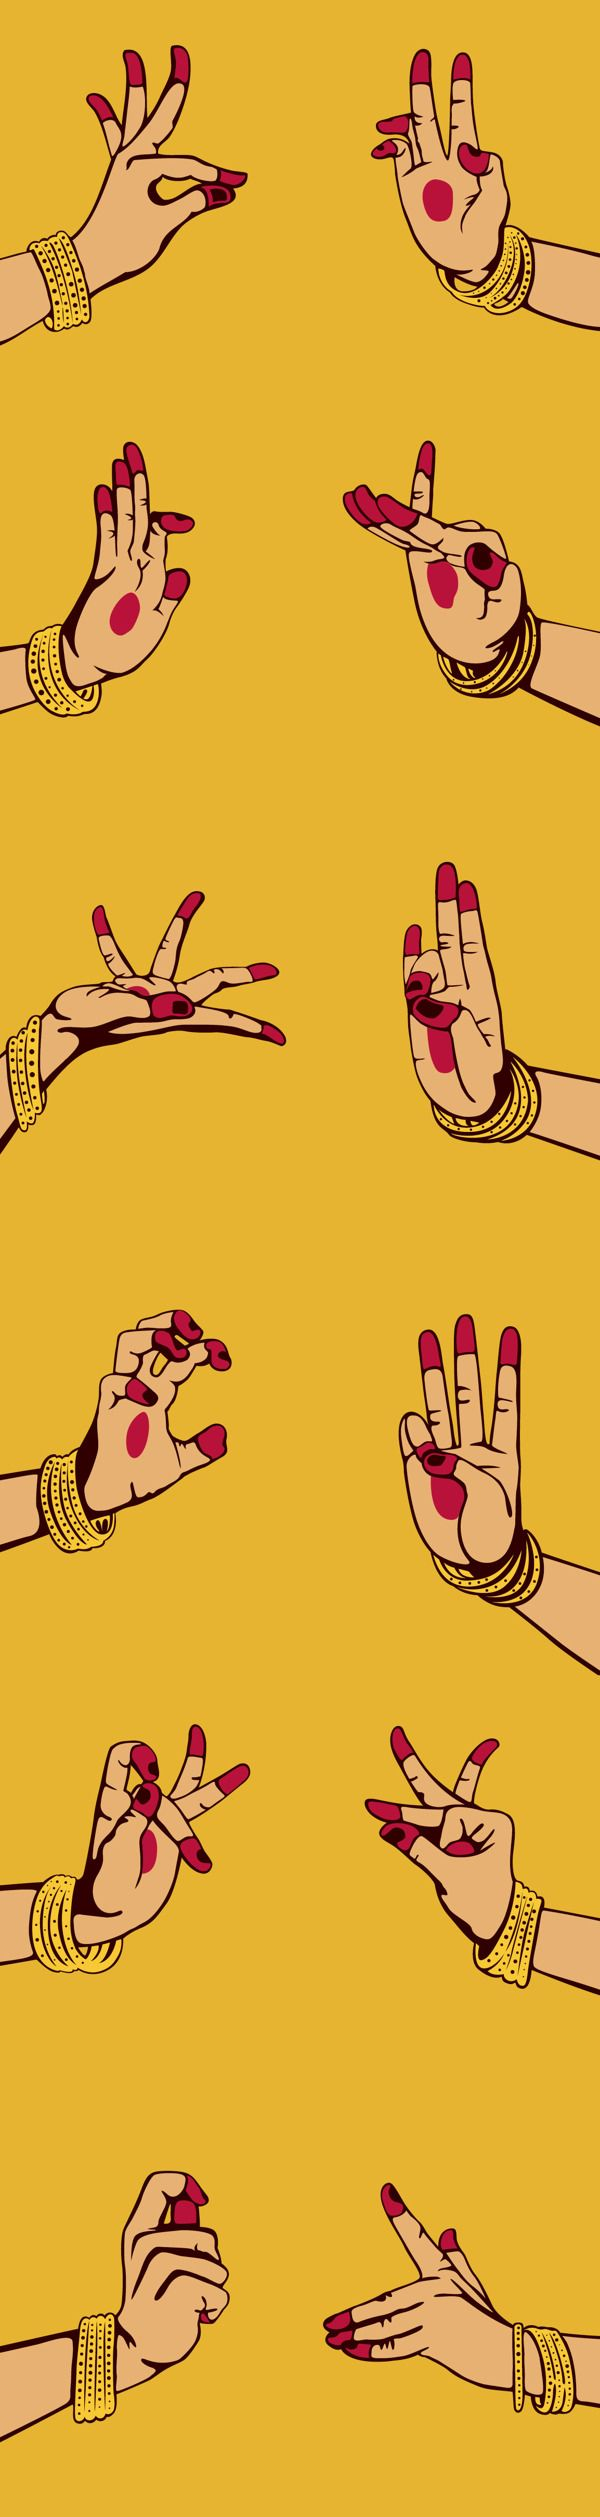 LivingArt Diary 2012 by Impprintz, via Behance Set of 12 illustrated mudras